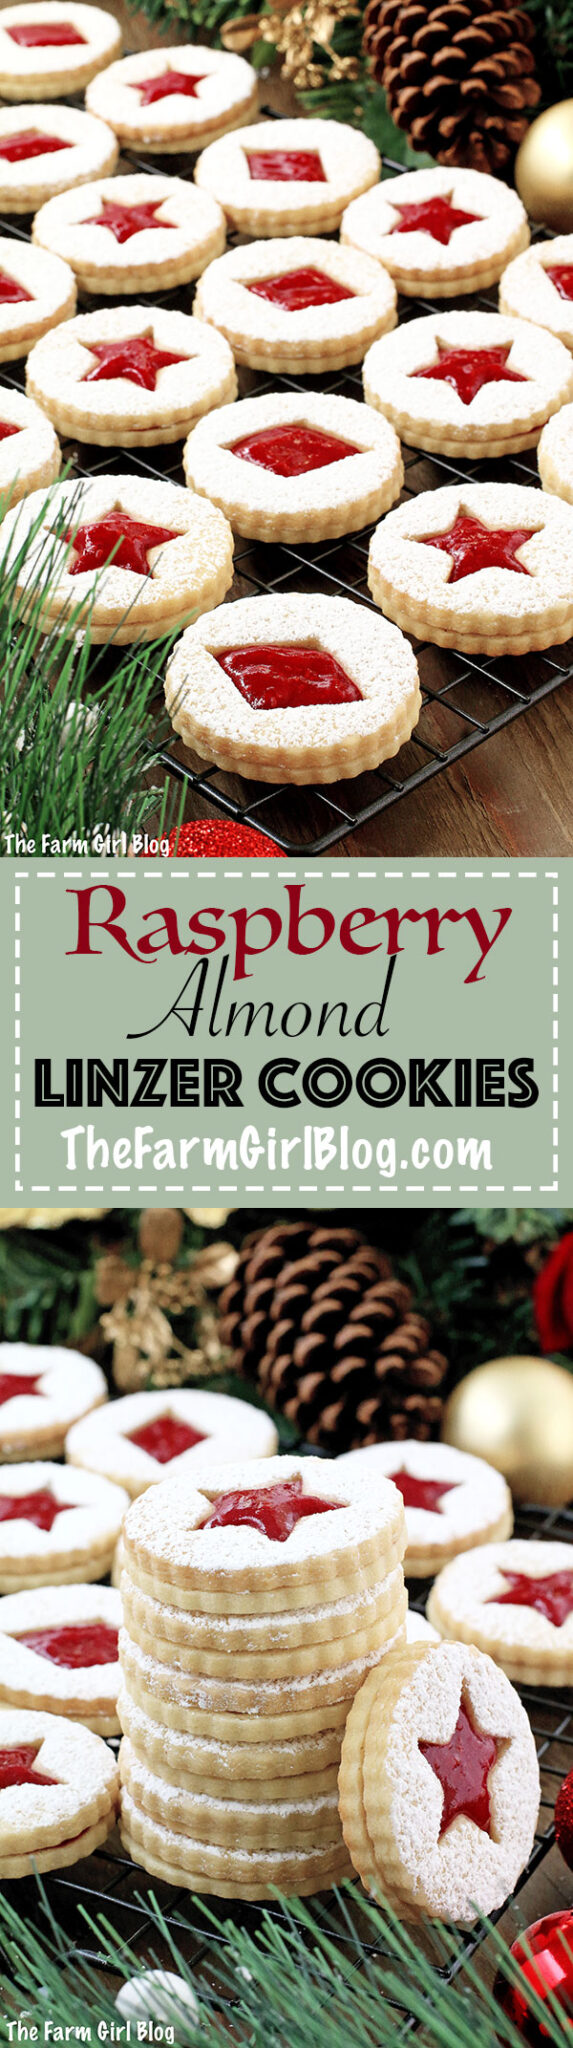 A super easy cookie recipe that will make your taste buds dance! Crunchy at first, before they're assembled, but soften once they absorb the jam filling. Either way, they are so delicious and bursting with raspberry flavor! You simply won't be able to resist going for more! That is, if the kids leave any... They look beautiful, delicate and festive. Perfect for the winter holiday season with a snow sprinkled design.